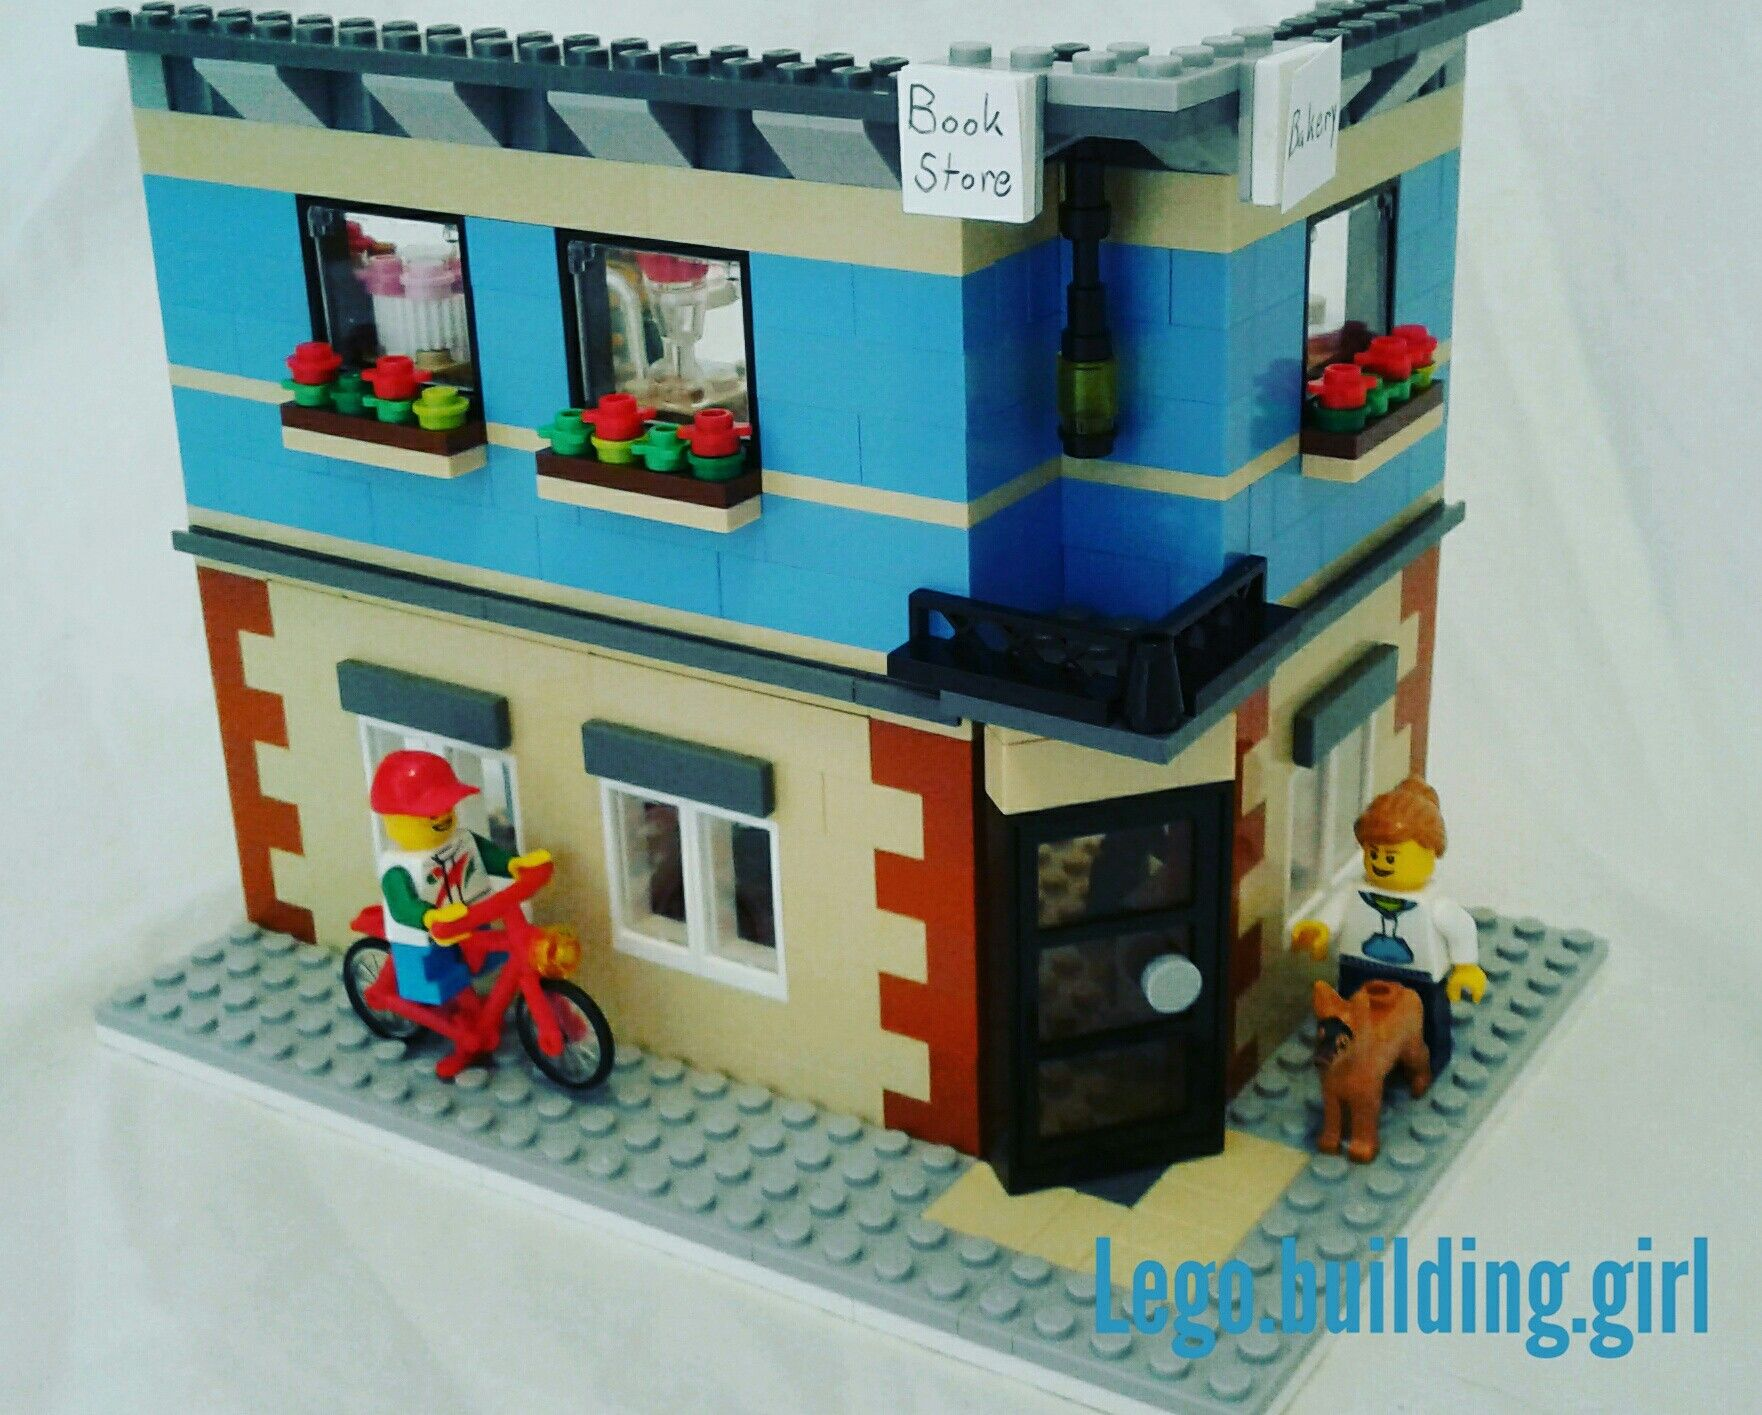 Lego corner book store and bakery